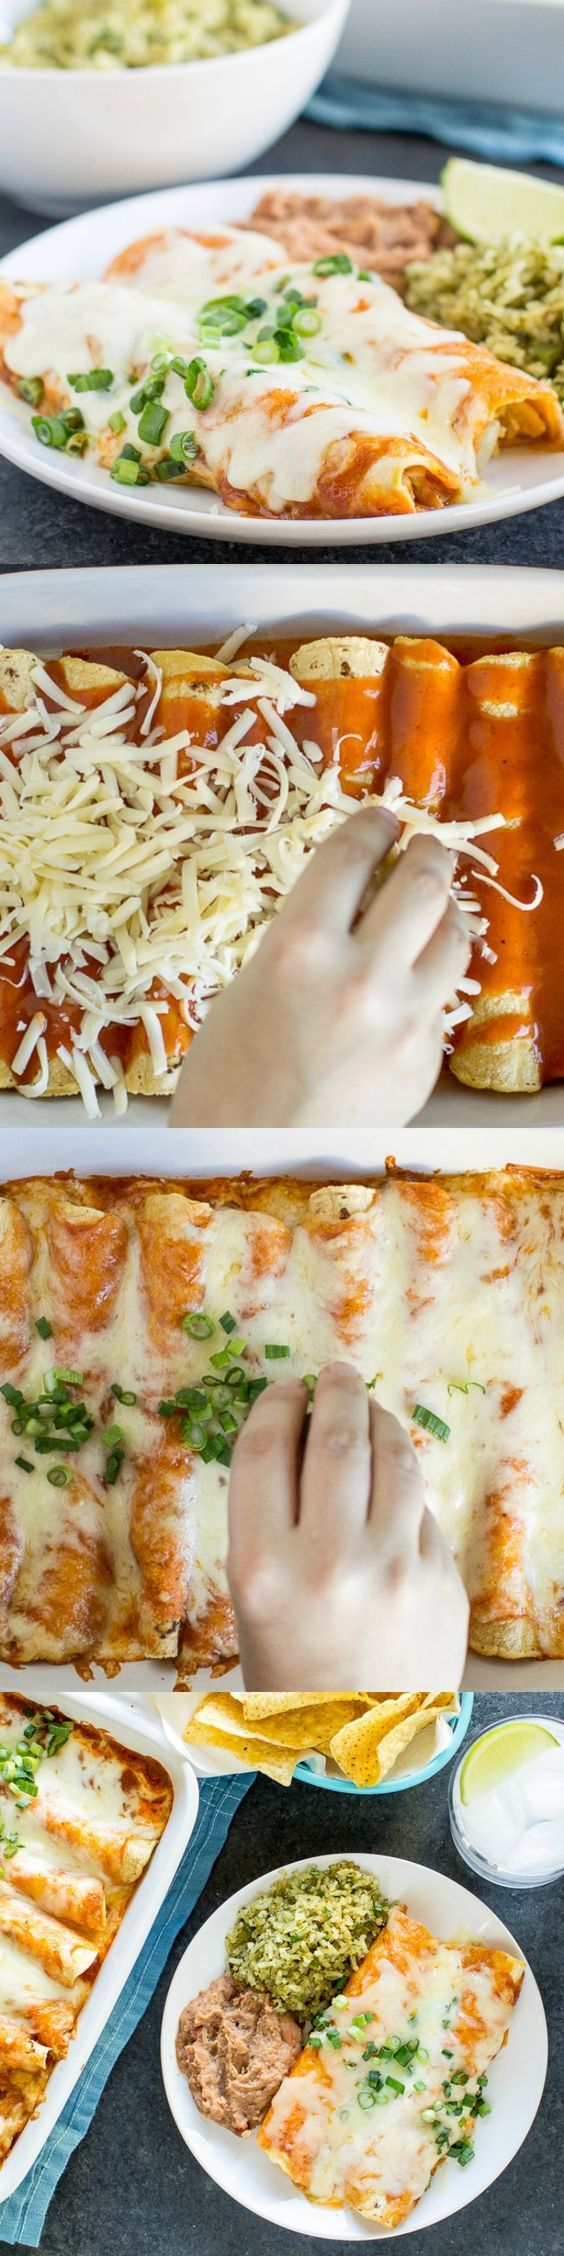 Creamy Chicken Enchiladas so good, you don't need to go out for Mexican food anymore. Prepare to swoon!